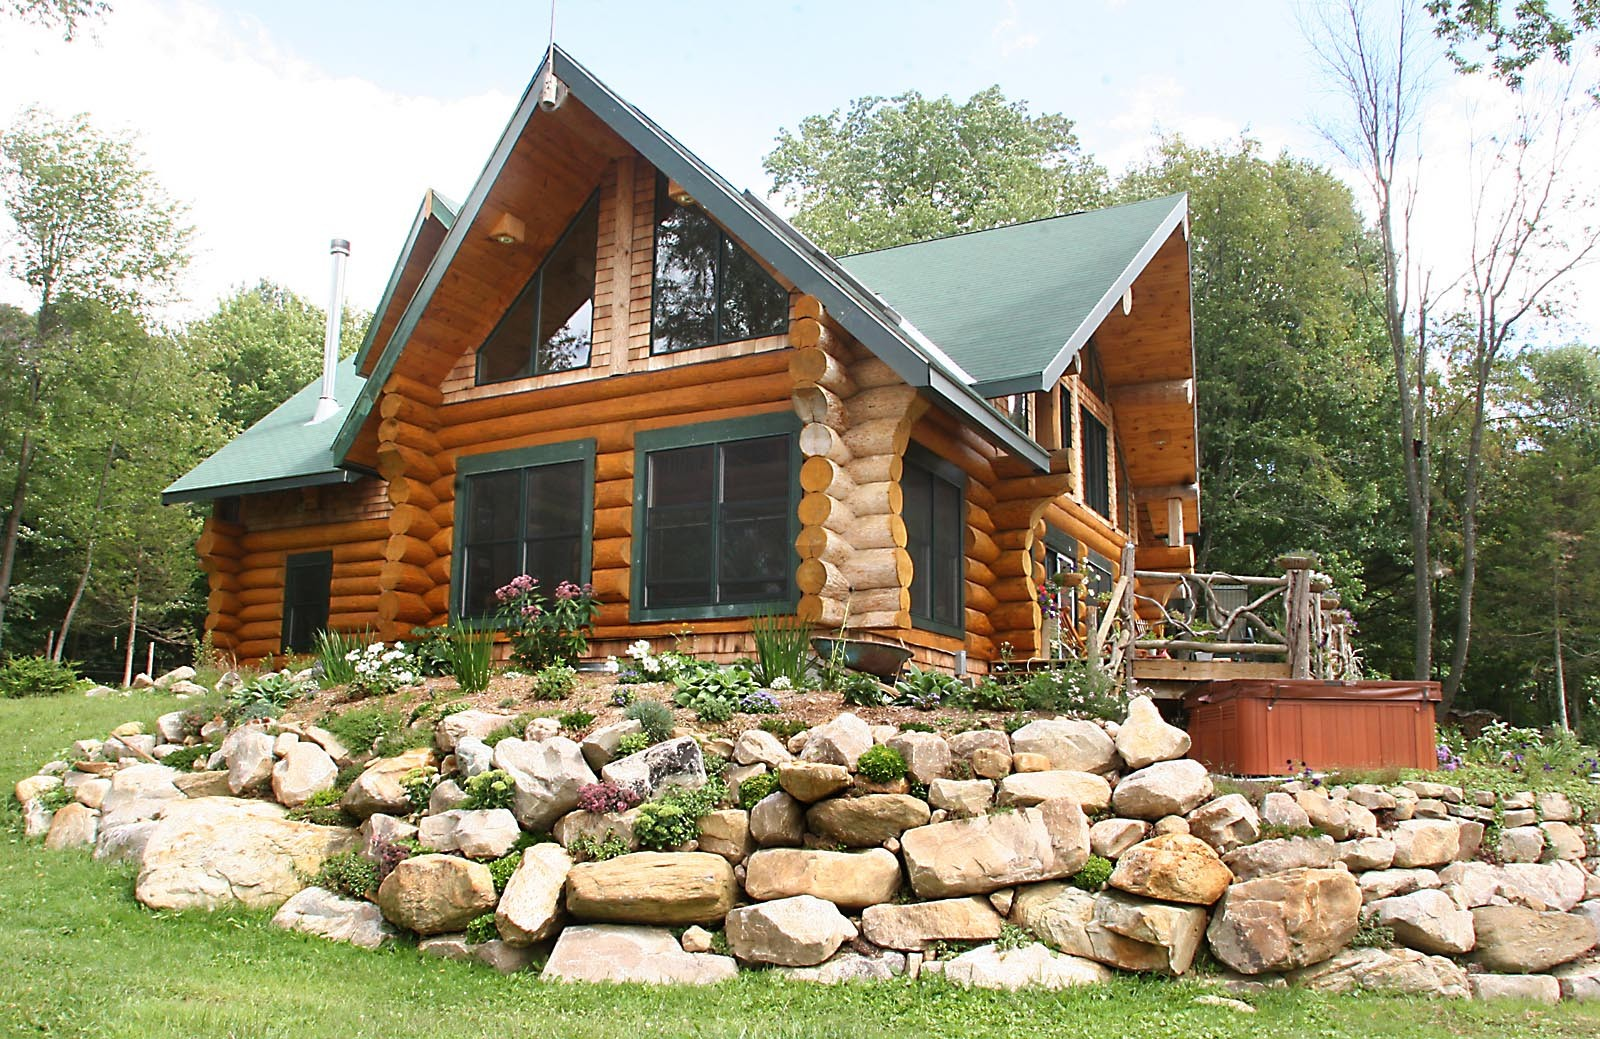 Log cabin designs canada design and ideas for Log cabin furniture canada